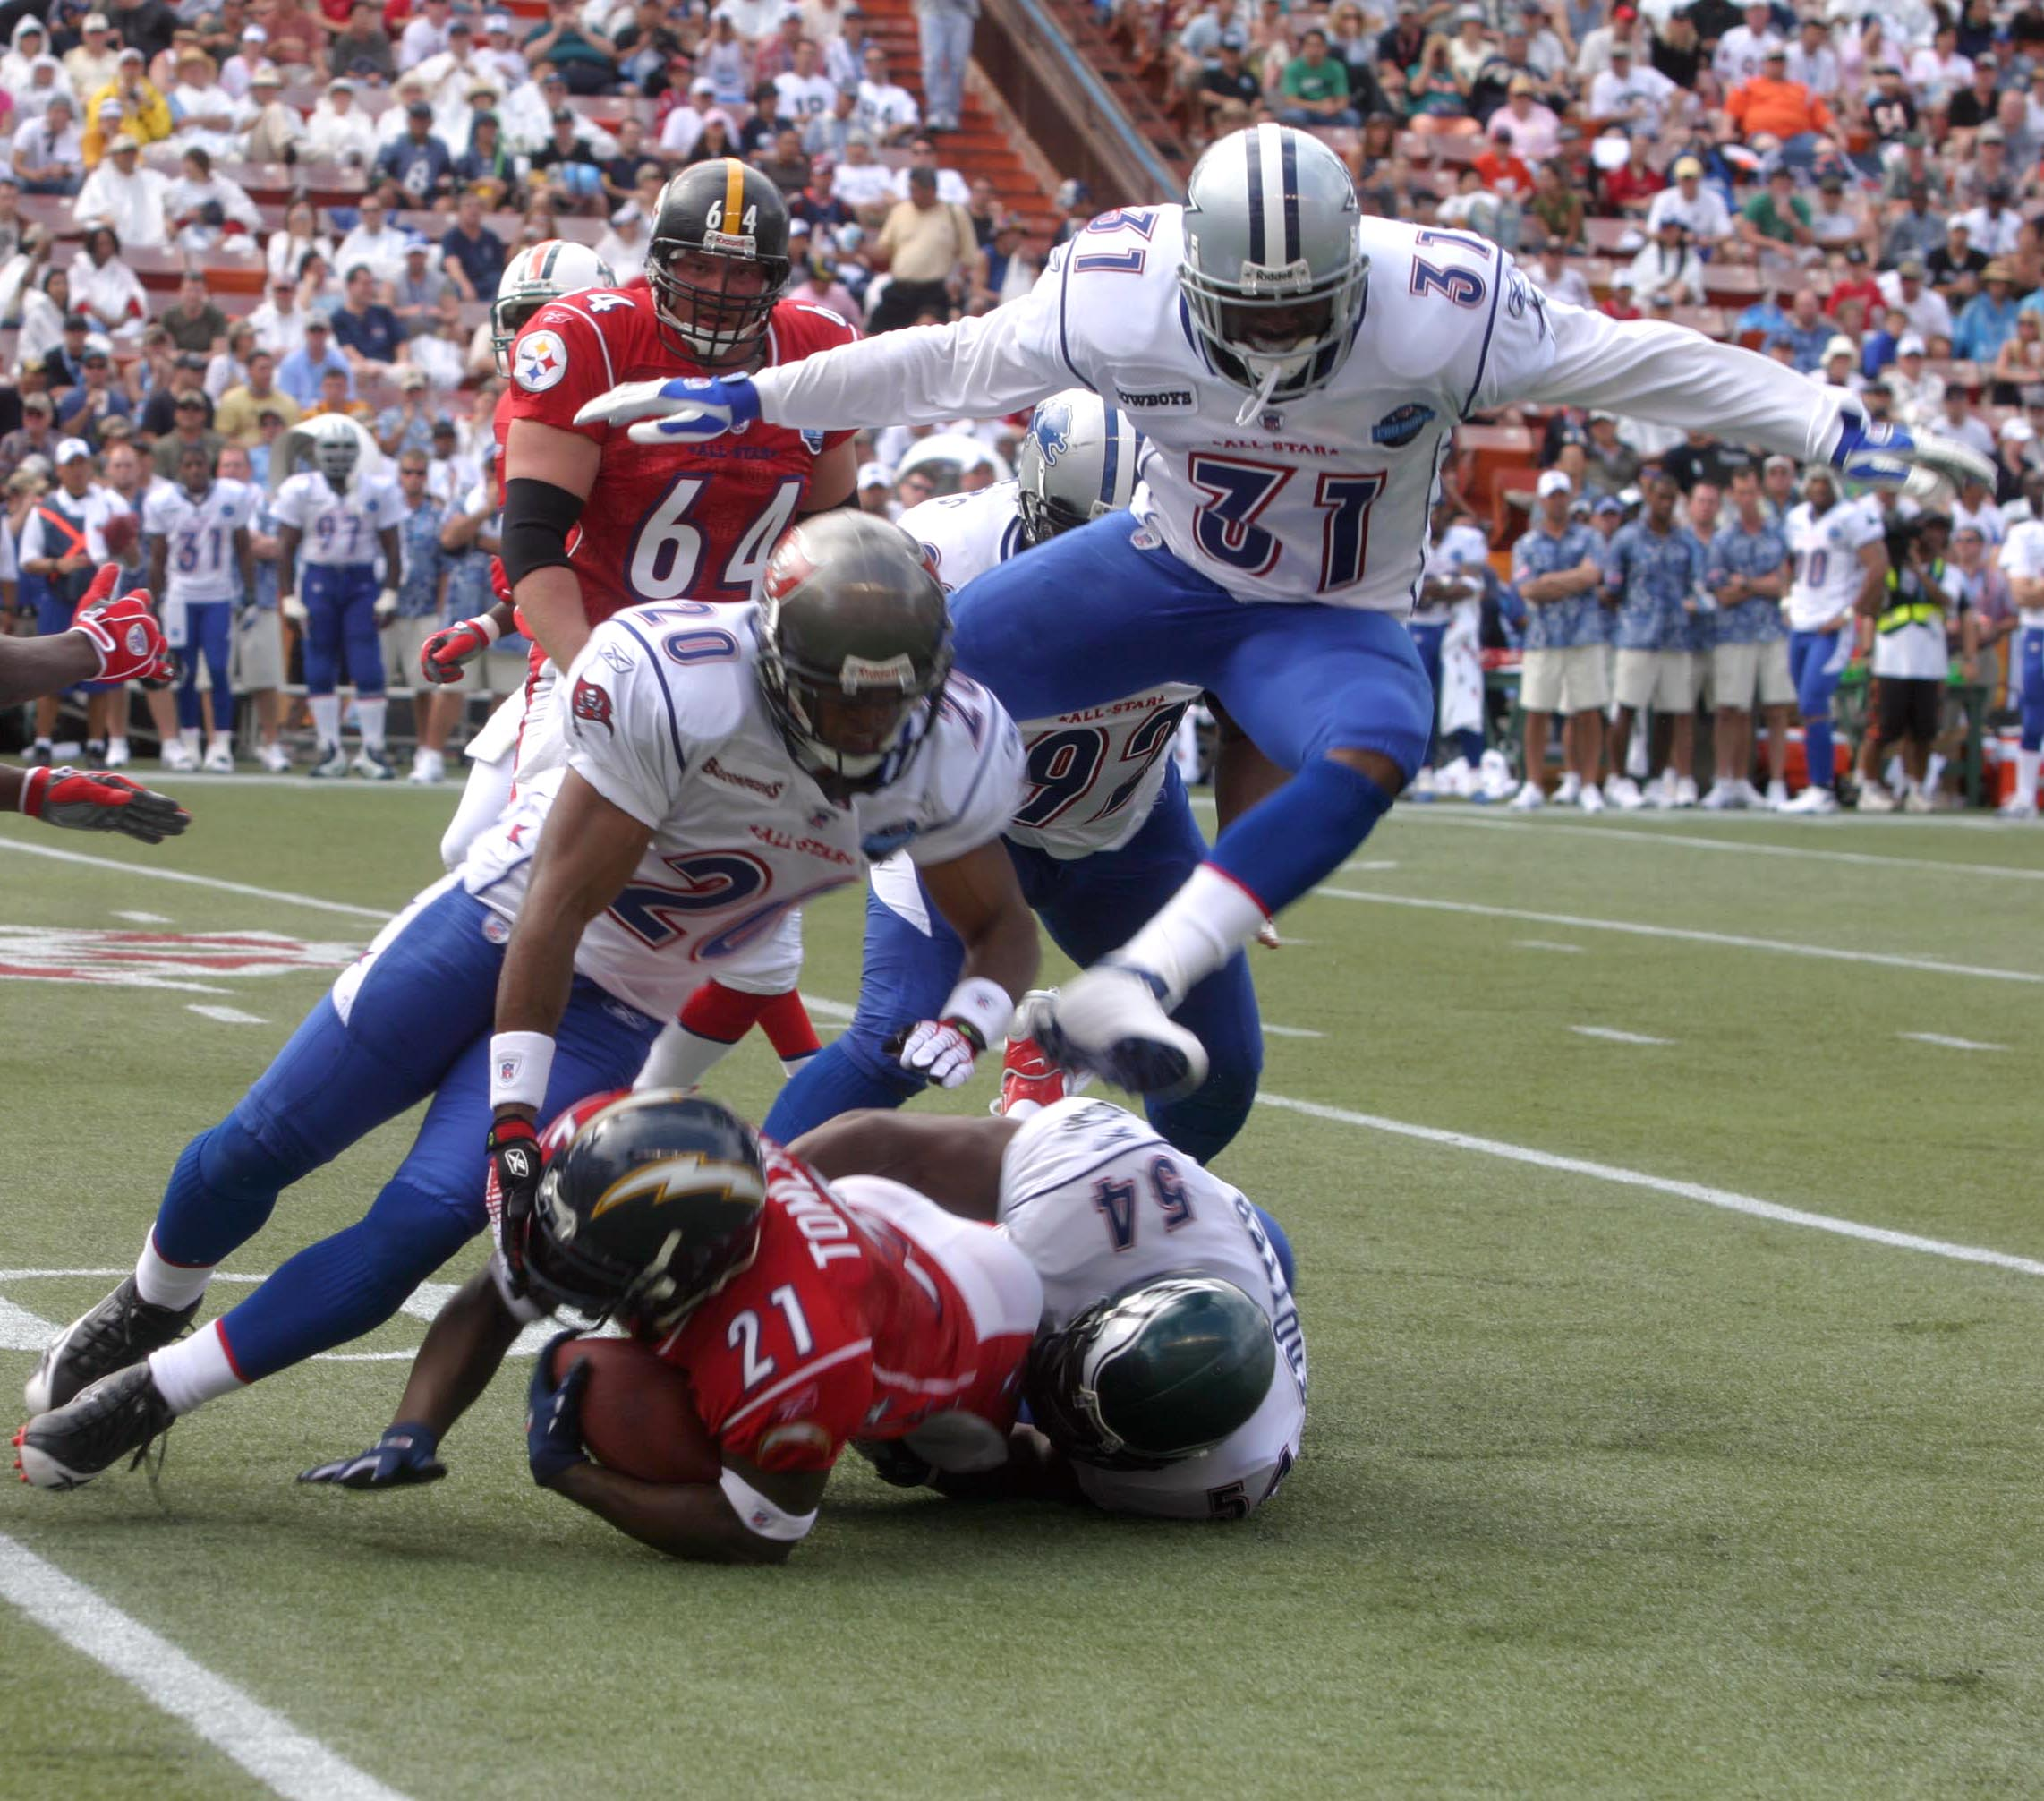 2006 Pro Bowl tackle, Wikimedia public domain, licensed by Creative Commons.